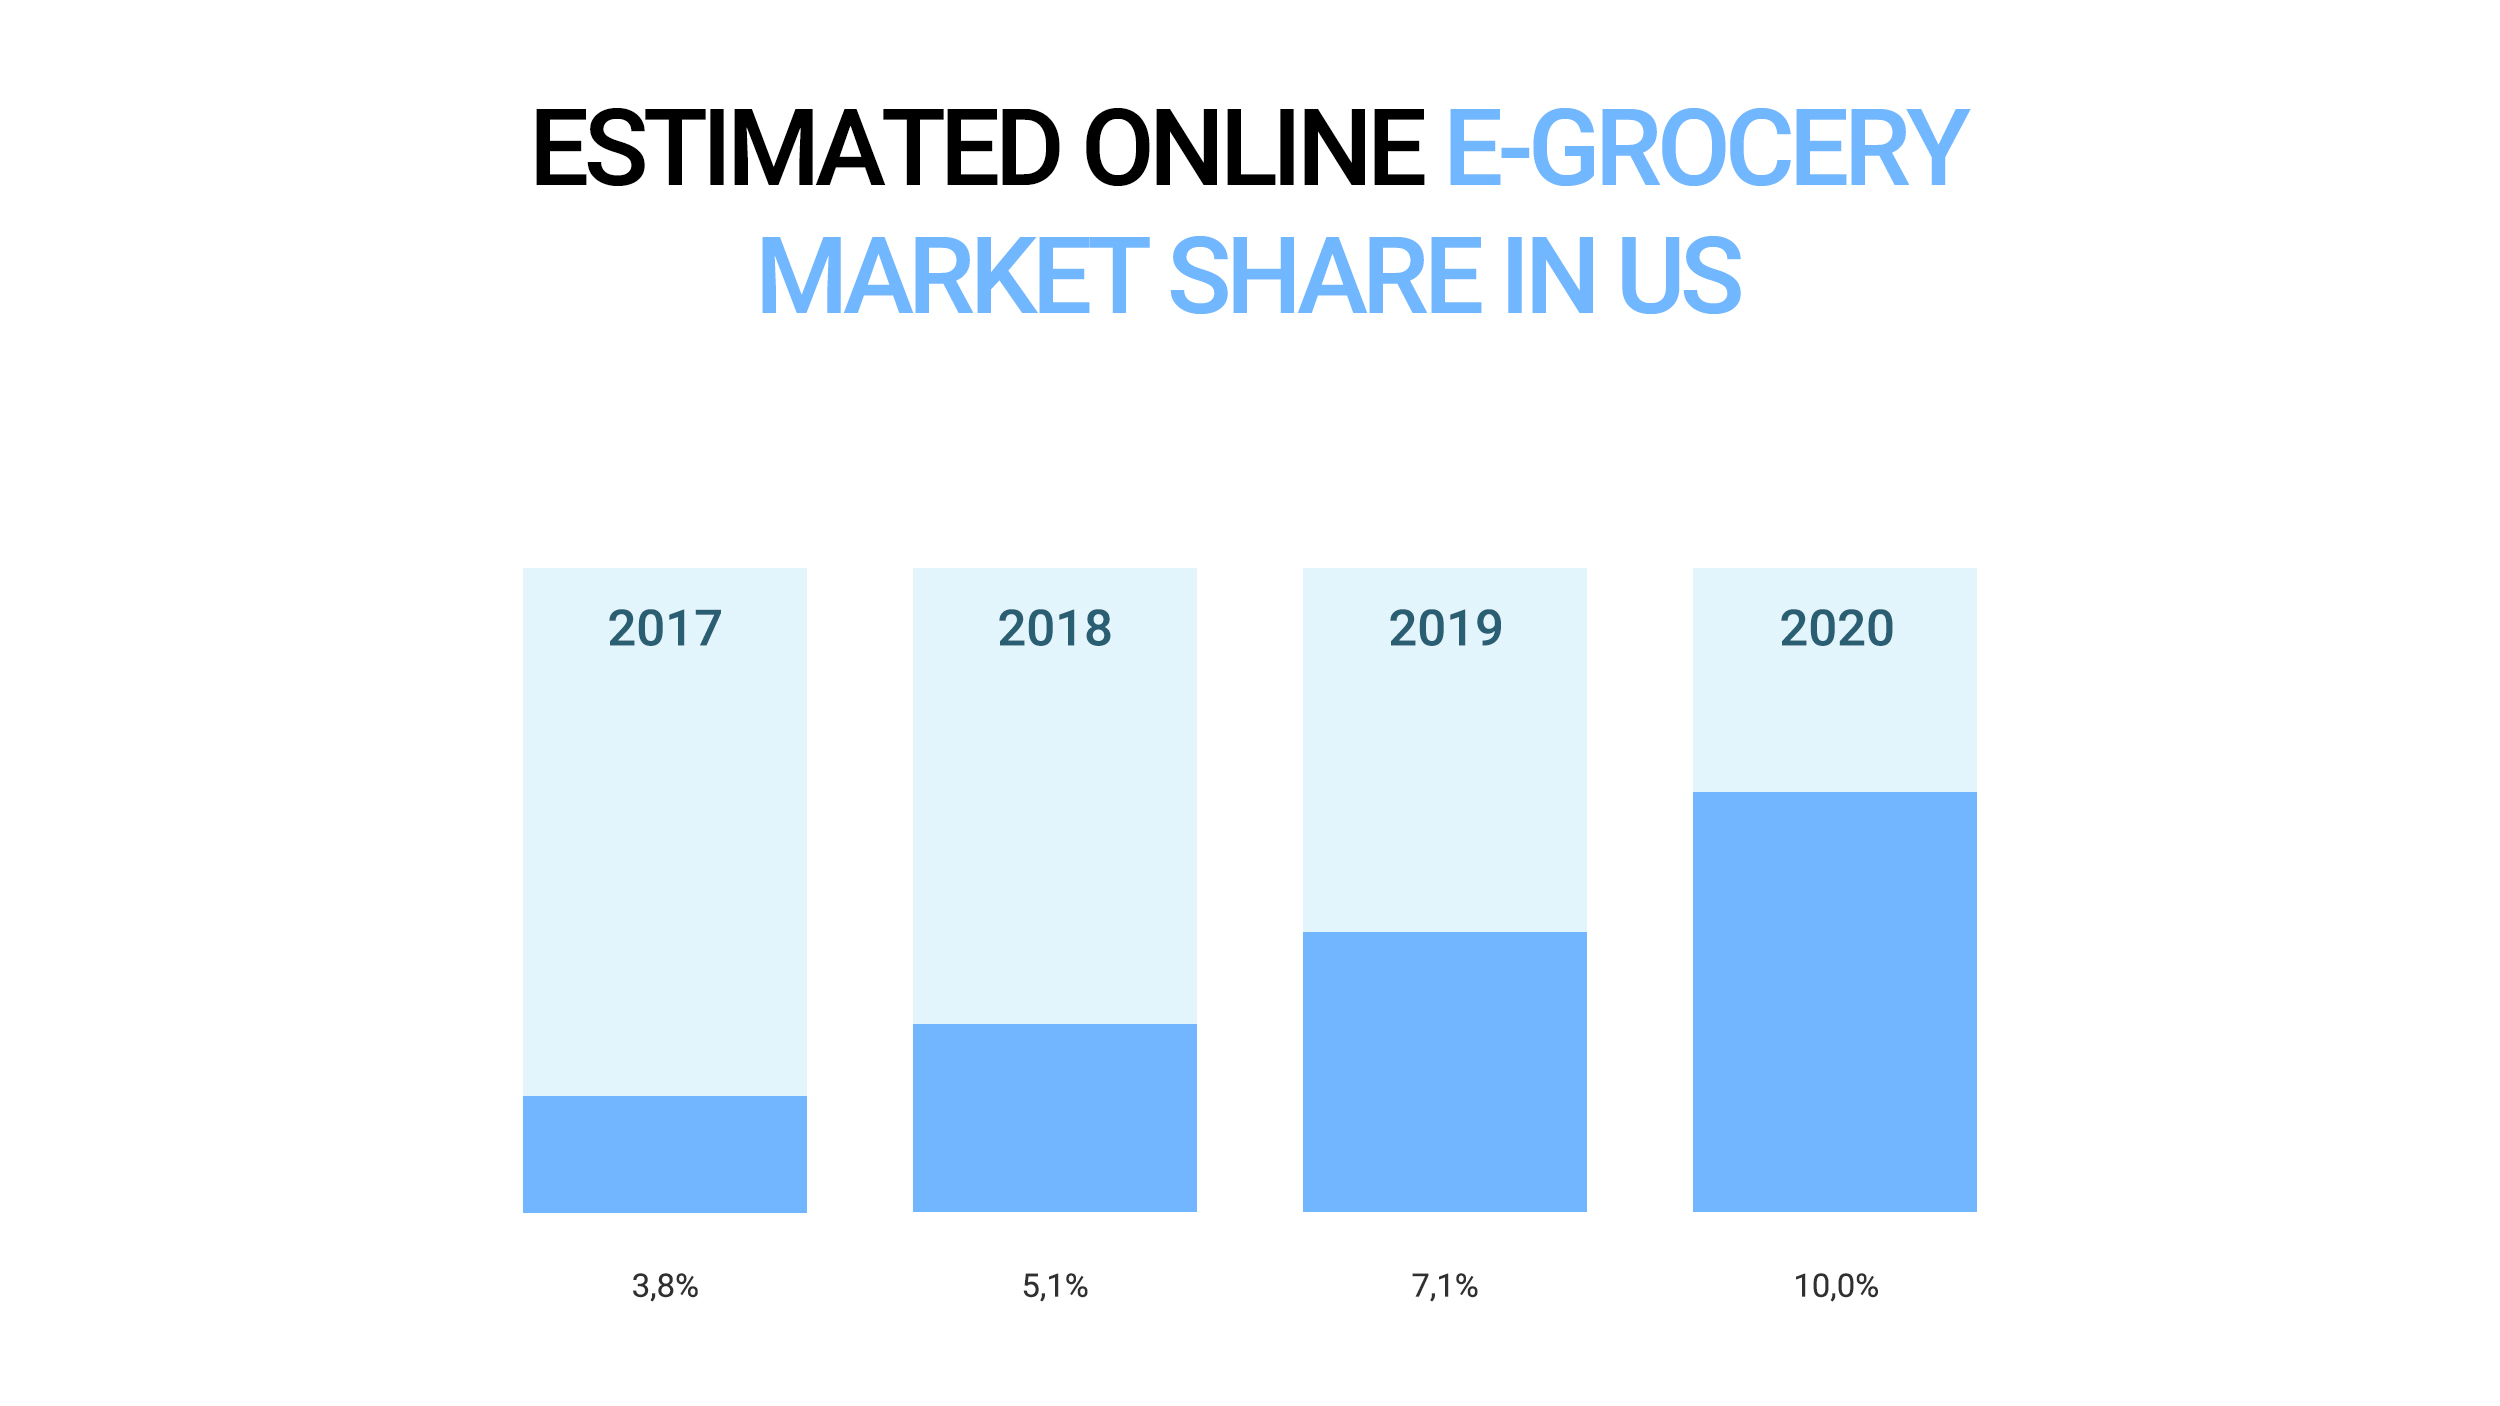 Estimated online e-grocery market share in US